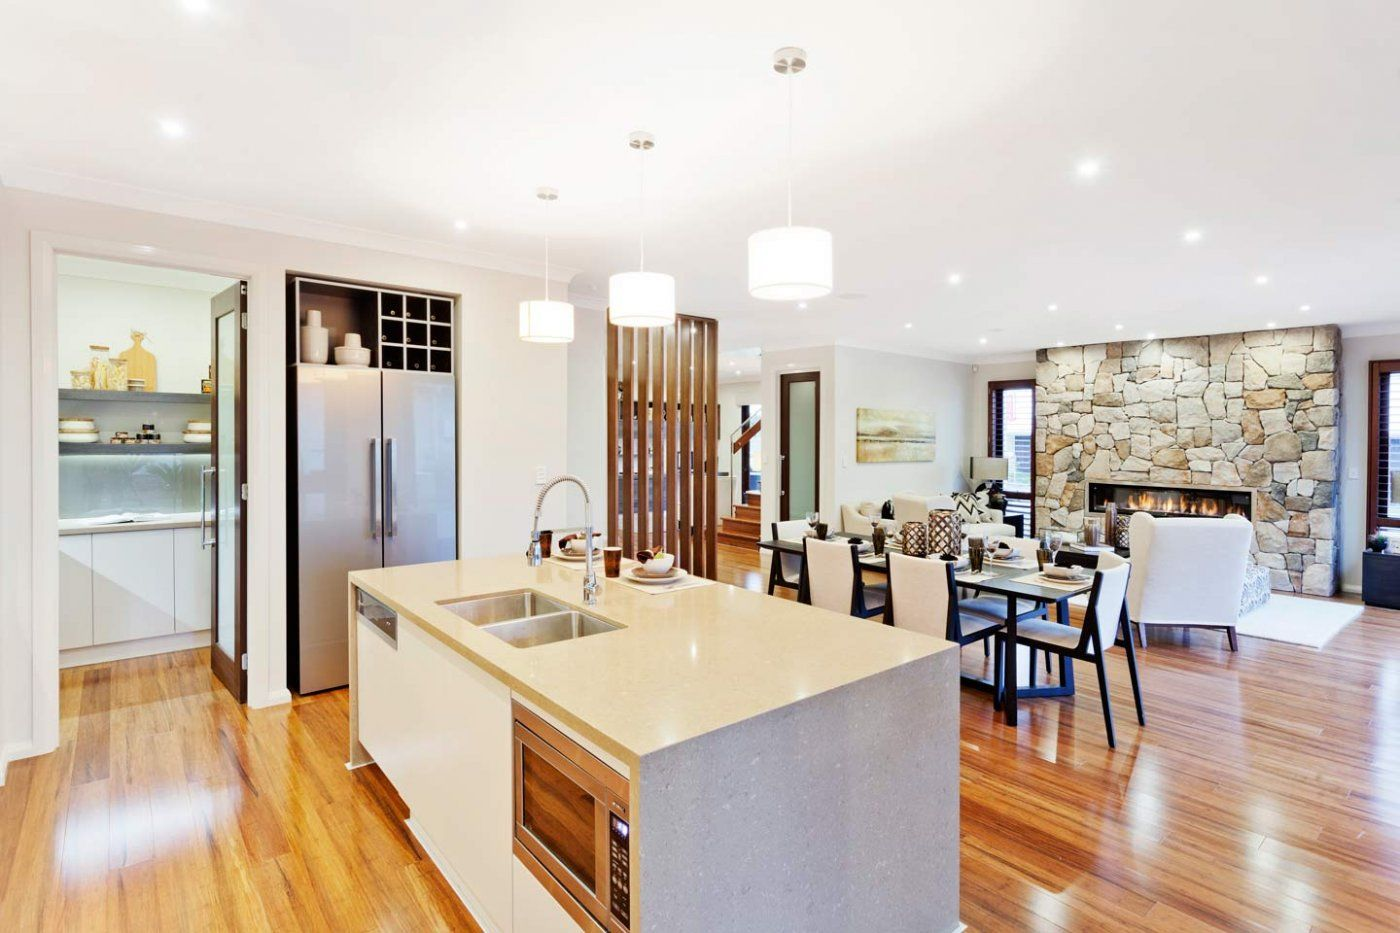 Huntingdale Home Design by McDonald Jones. Exclusive to Canberra ...